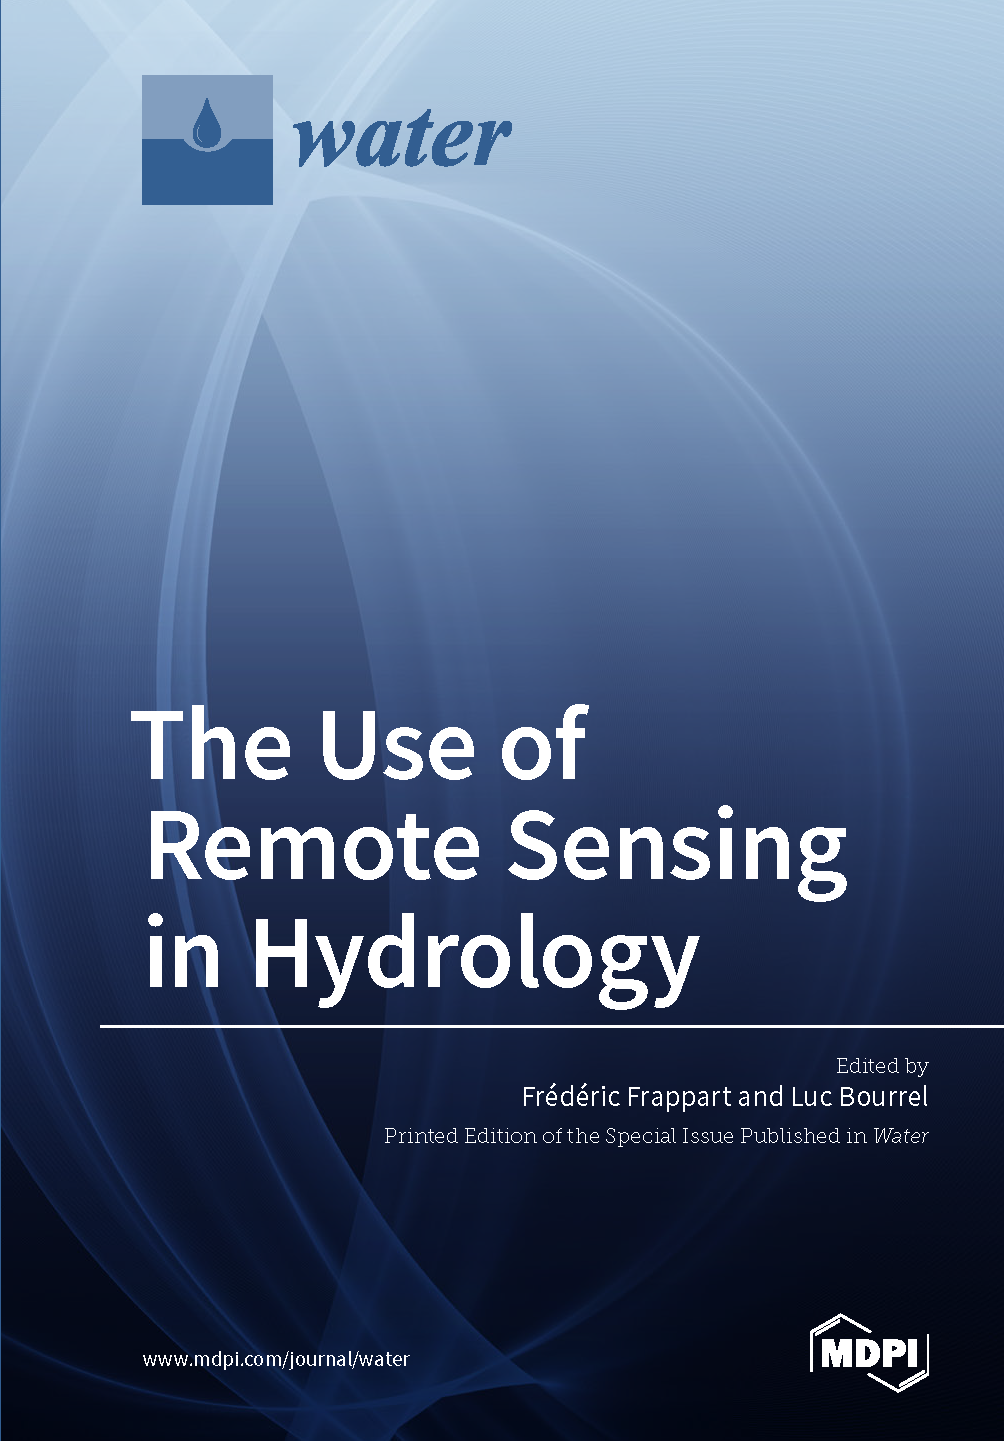 The Use of Remote Sensing in Hydrology